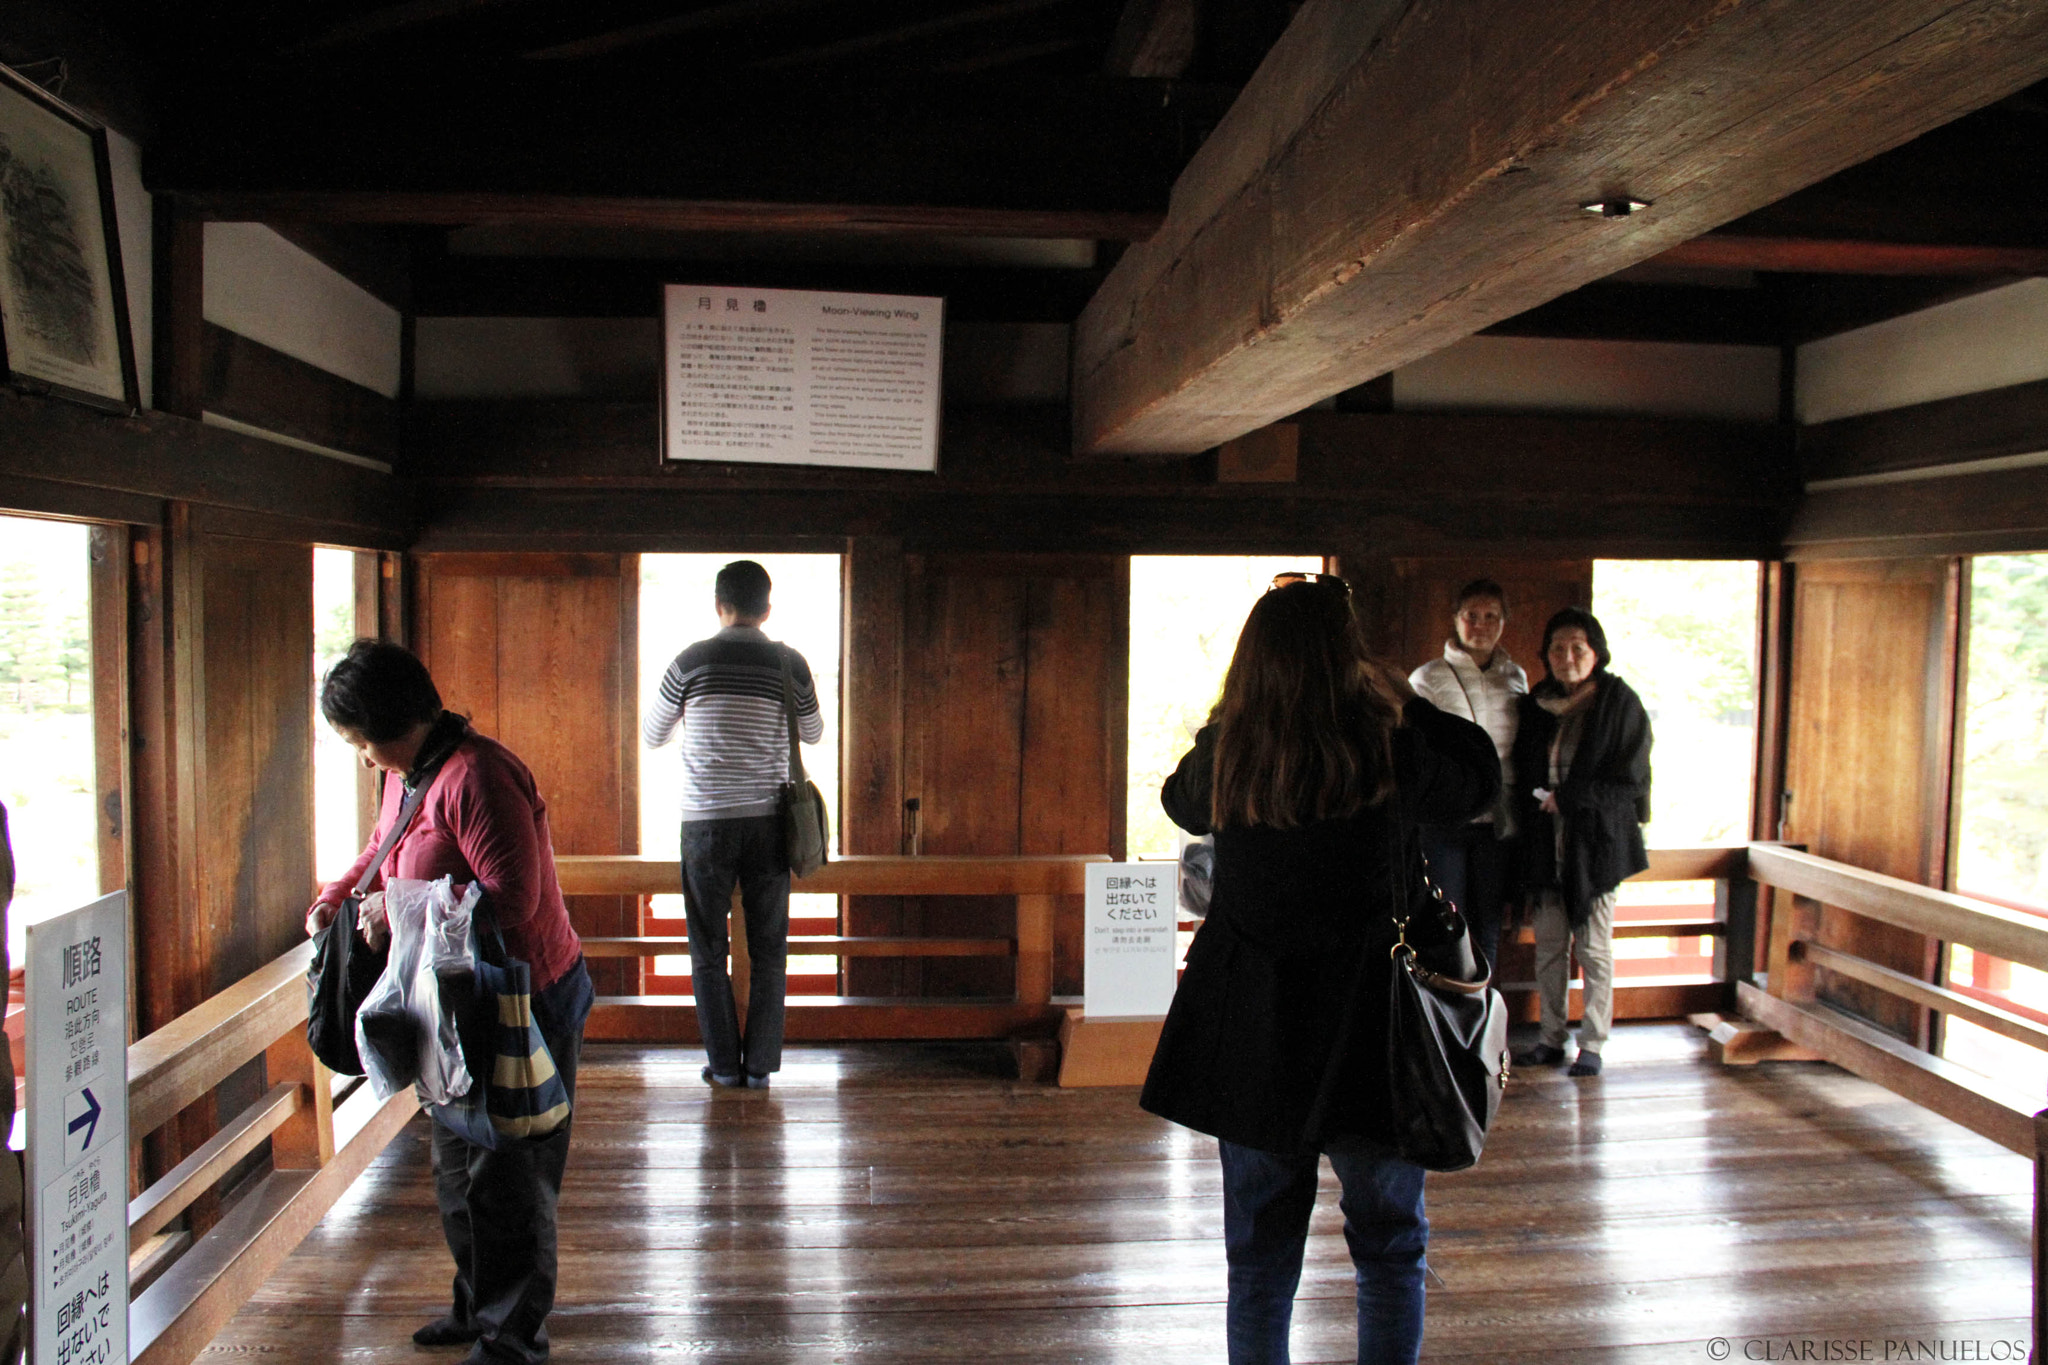 3a7d107f430bf3b314f458450c921a8a - Japan Travel Blog April 2015: Matsumoto Castle